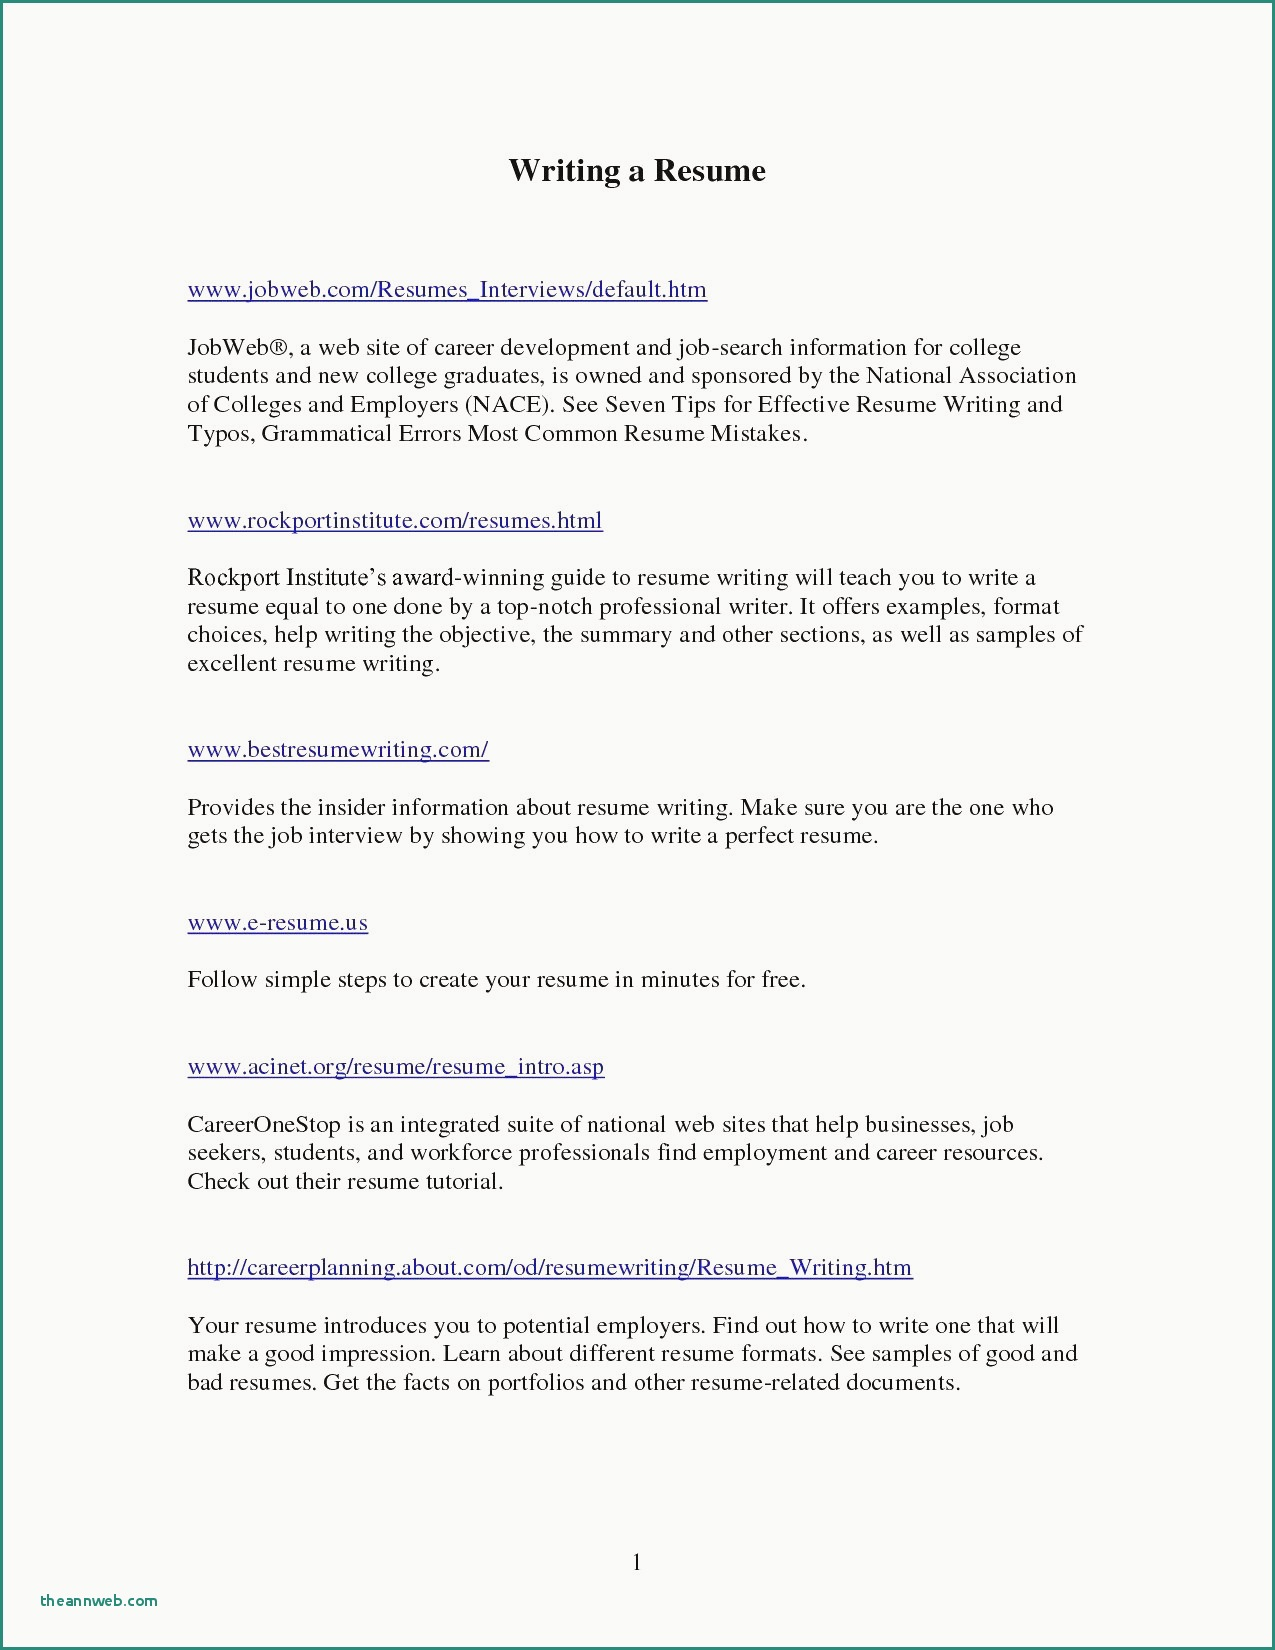 Professional Resume Writing - How to Write A Excellent Resume Sample Entry Level Resume New Entry